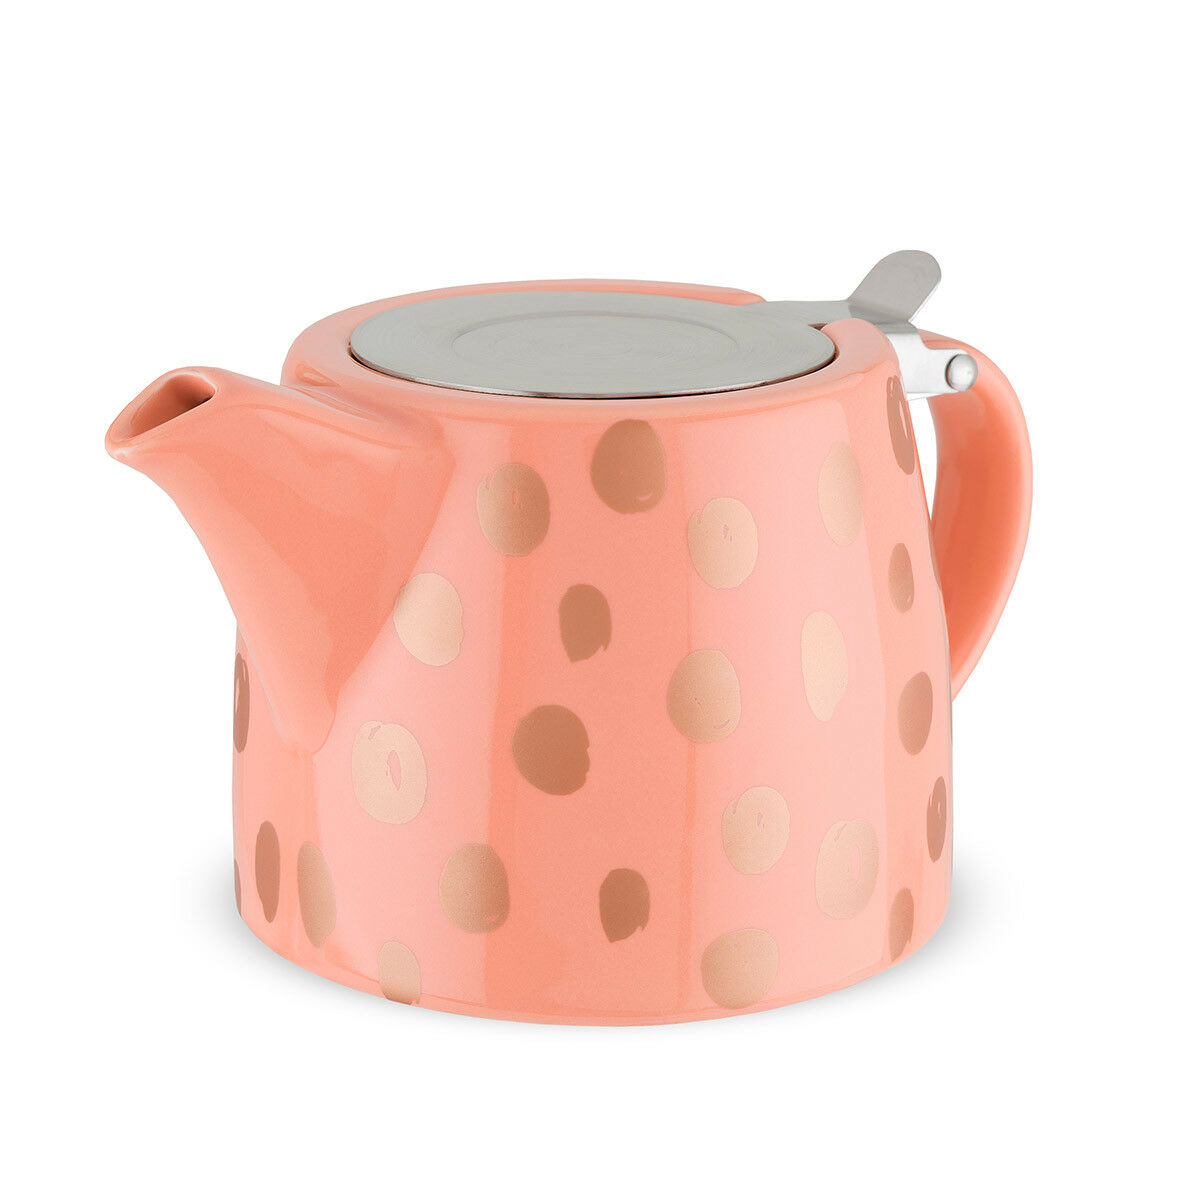 NIB Pinky Up Harper Ceramic Teapot & Infuser 20oz  - Peach w